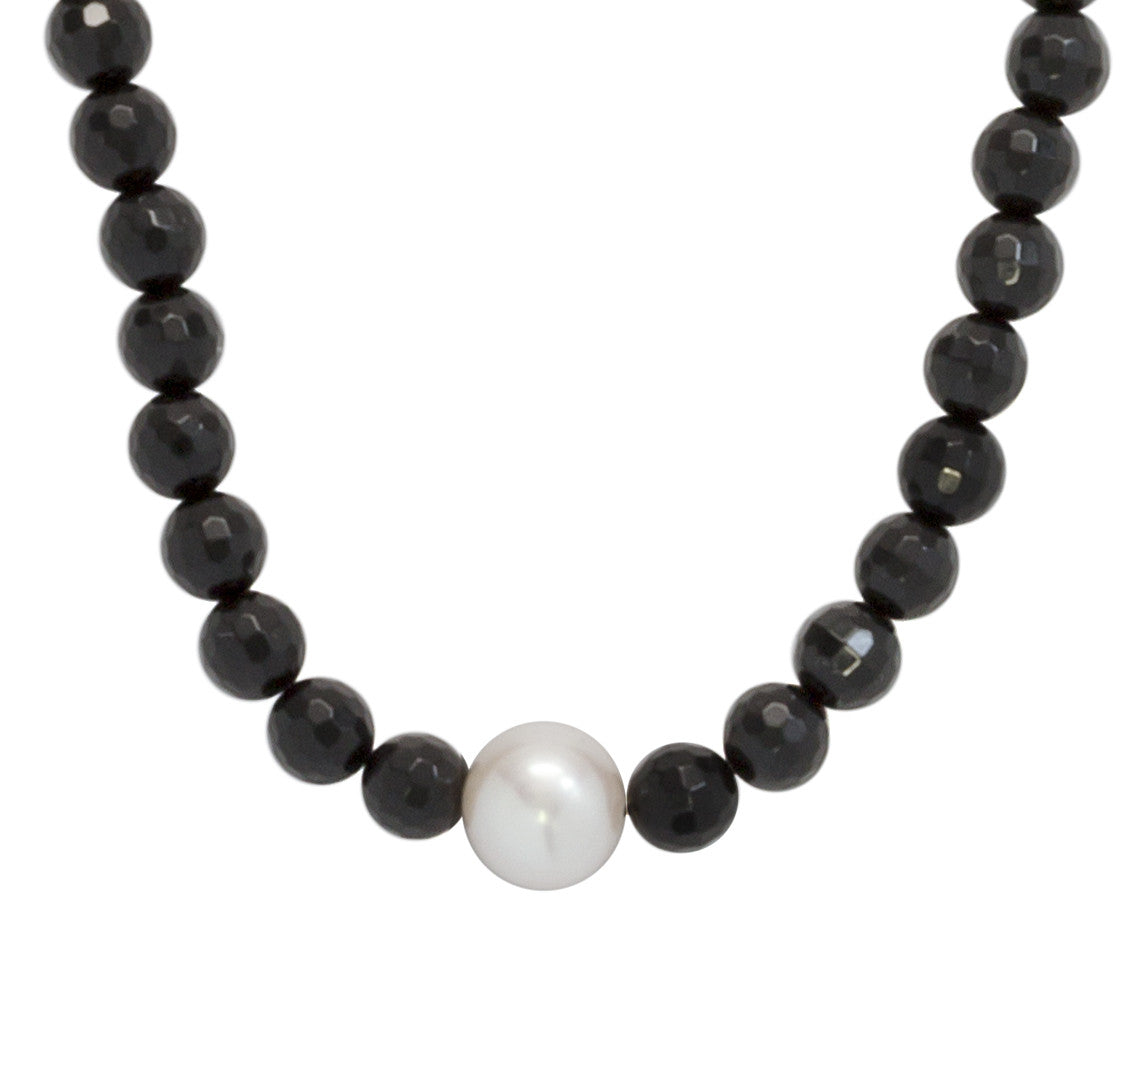 Freshwater Pearl & Faceted Black Onyx Choker Necklace